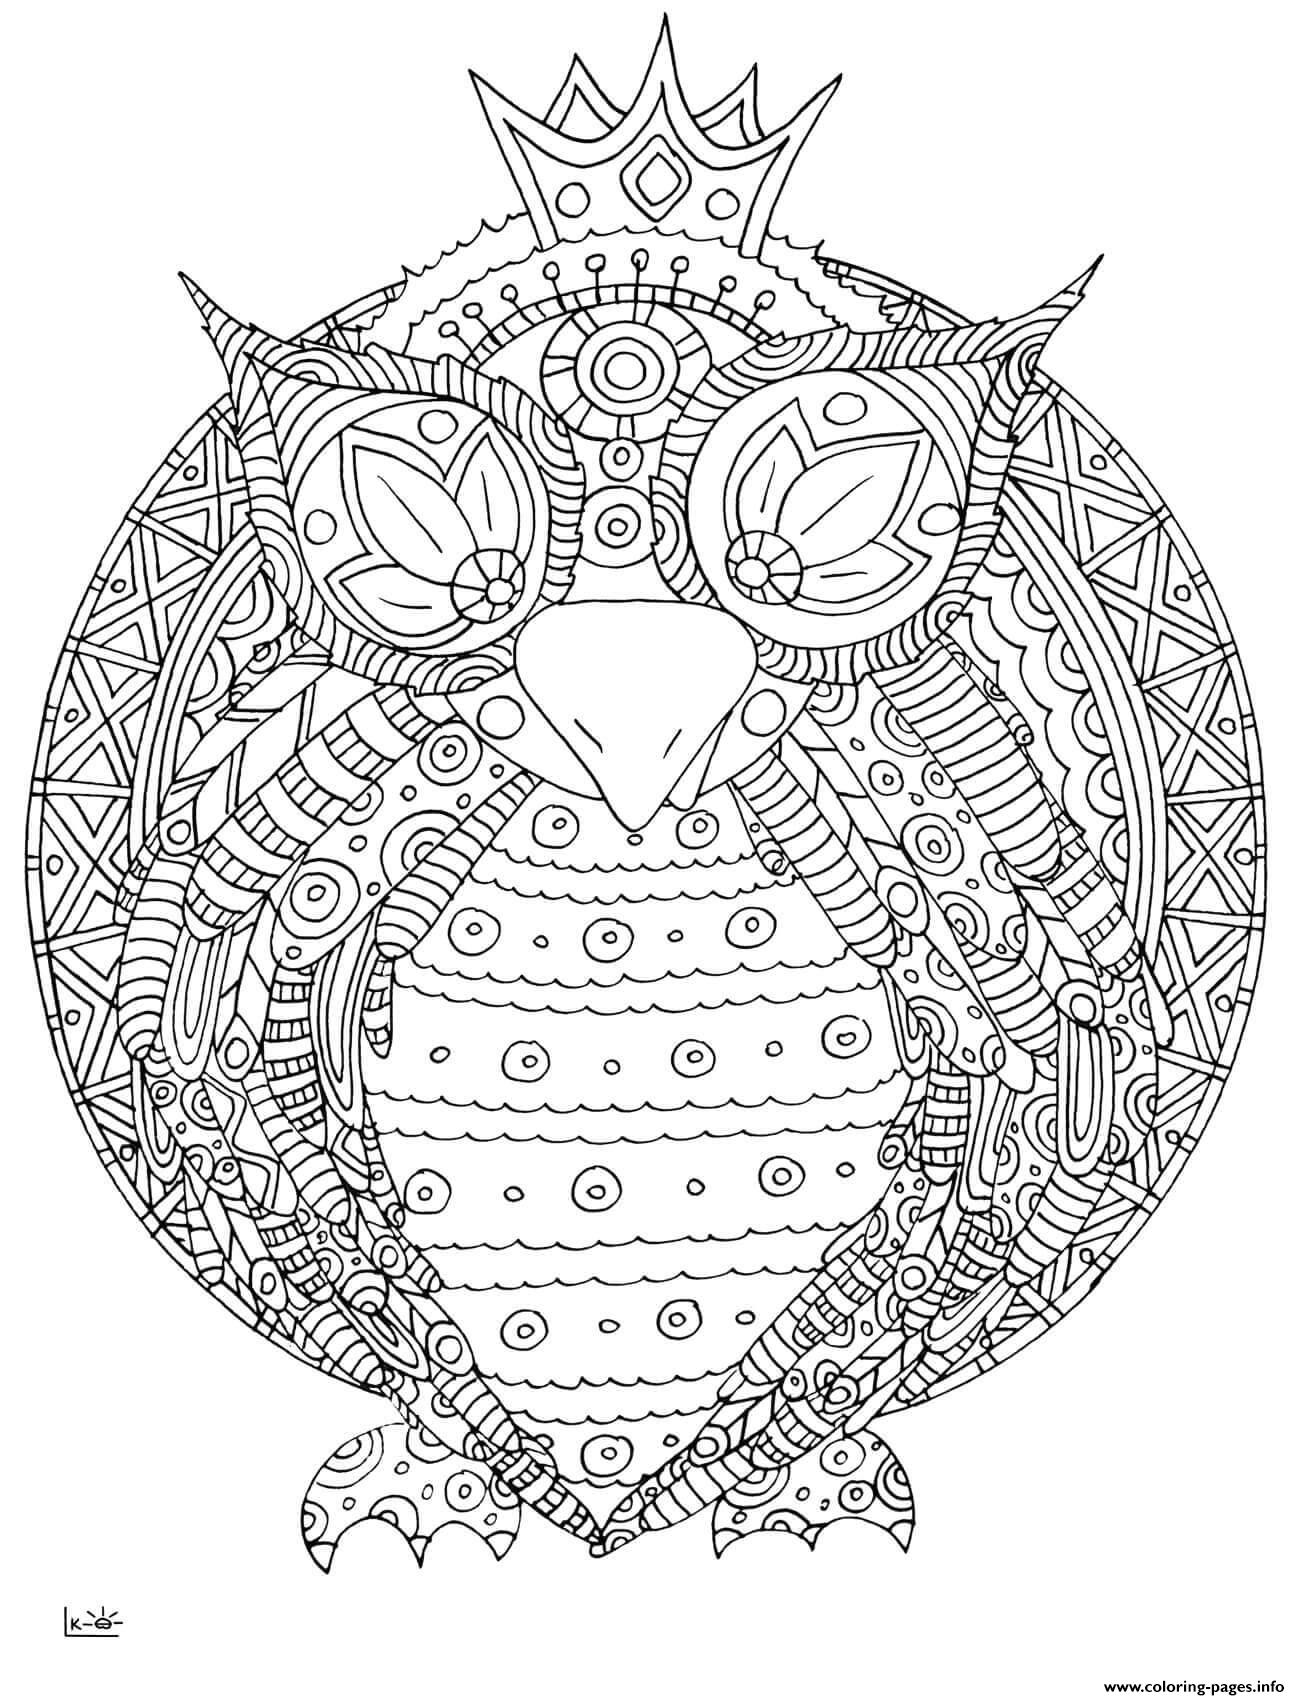 Owl with tribal pattern adults coloring pages printable for Tribal pattern coloring pages